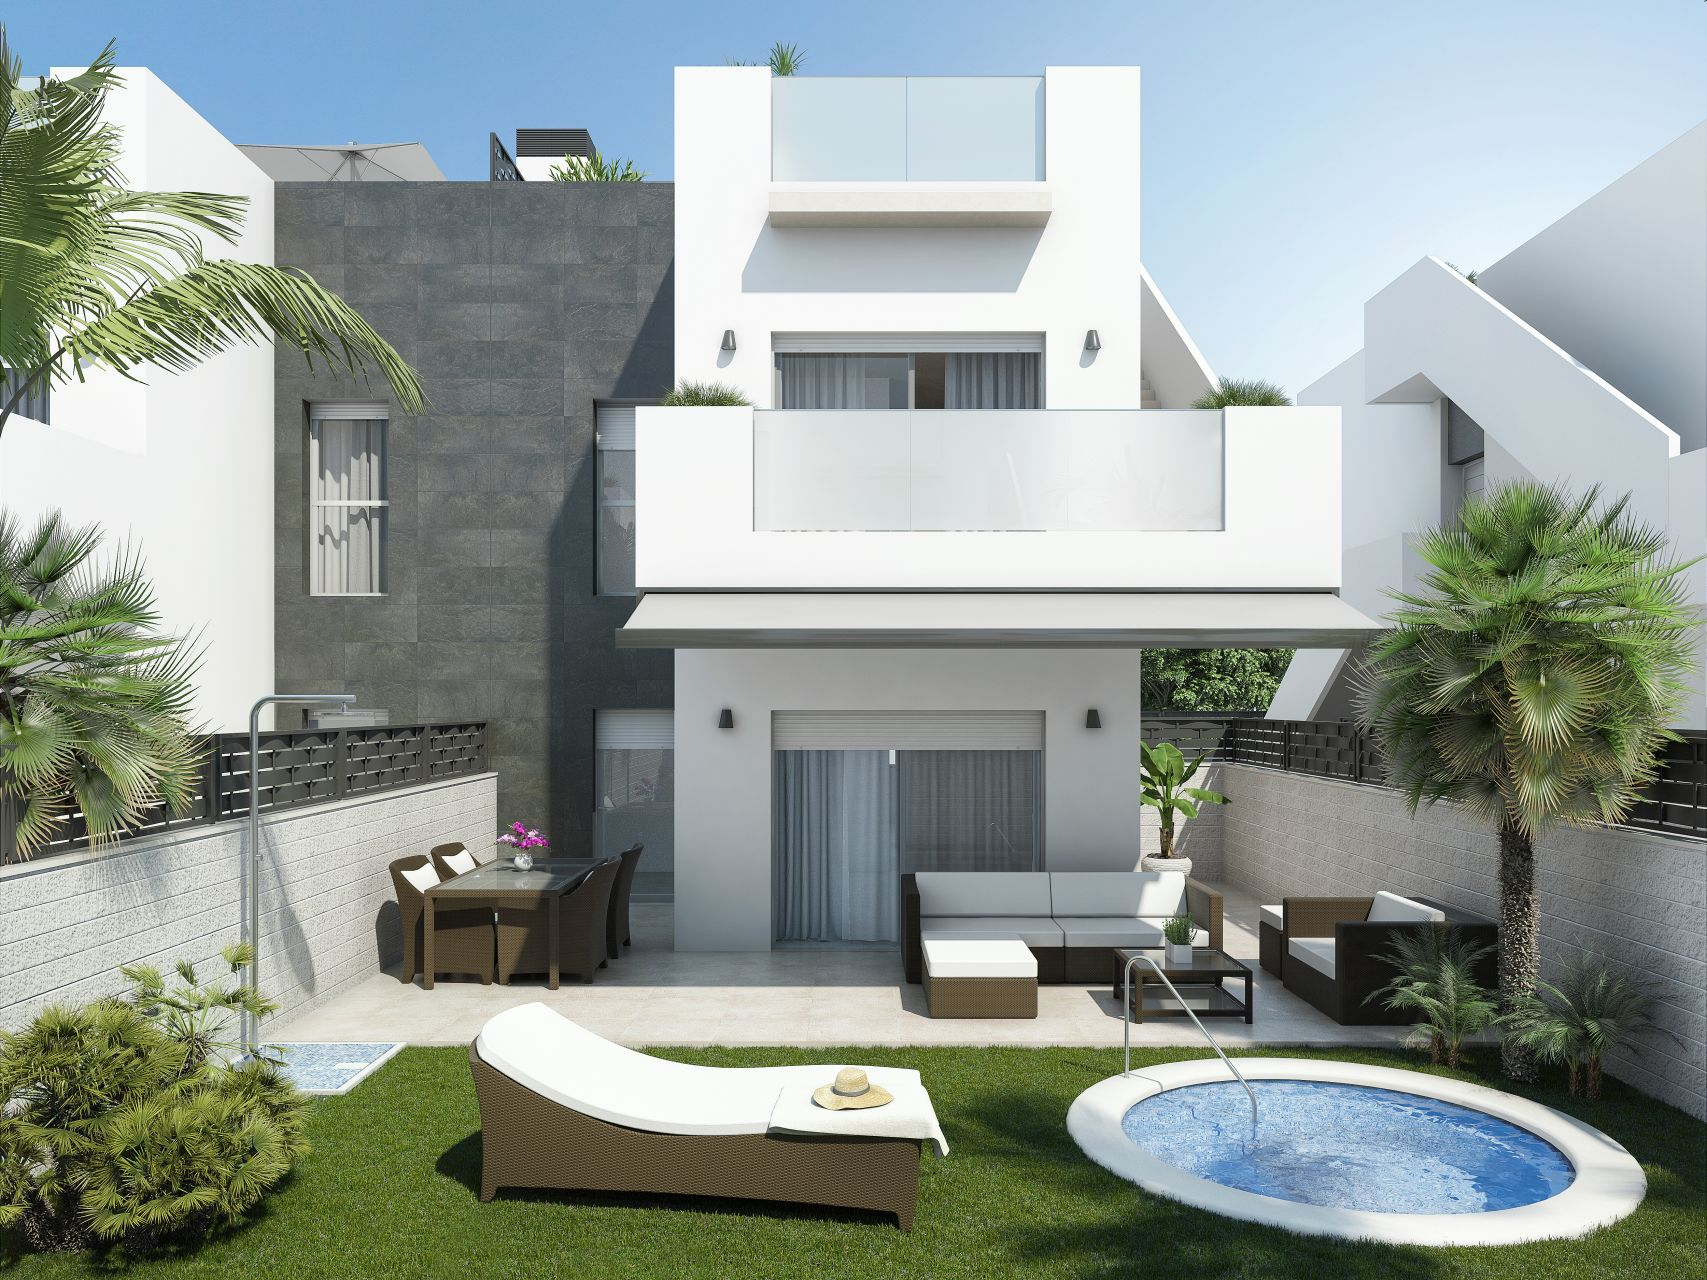 Apartments and villas luxury in Ciudad Quesada 23